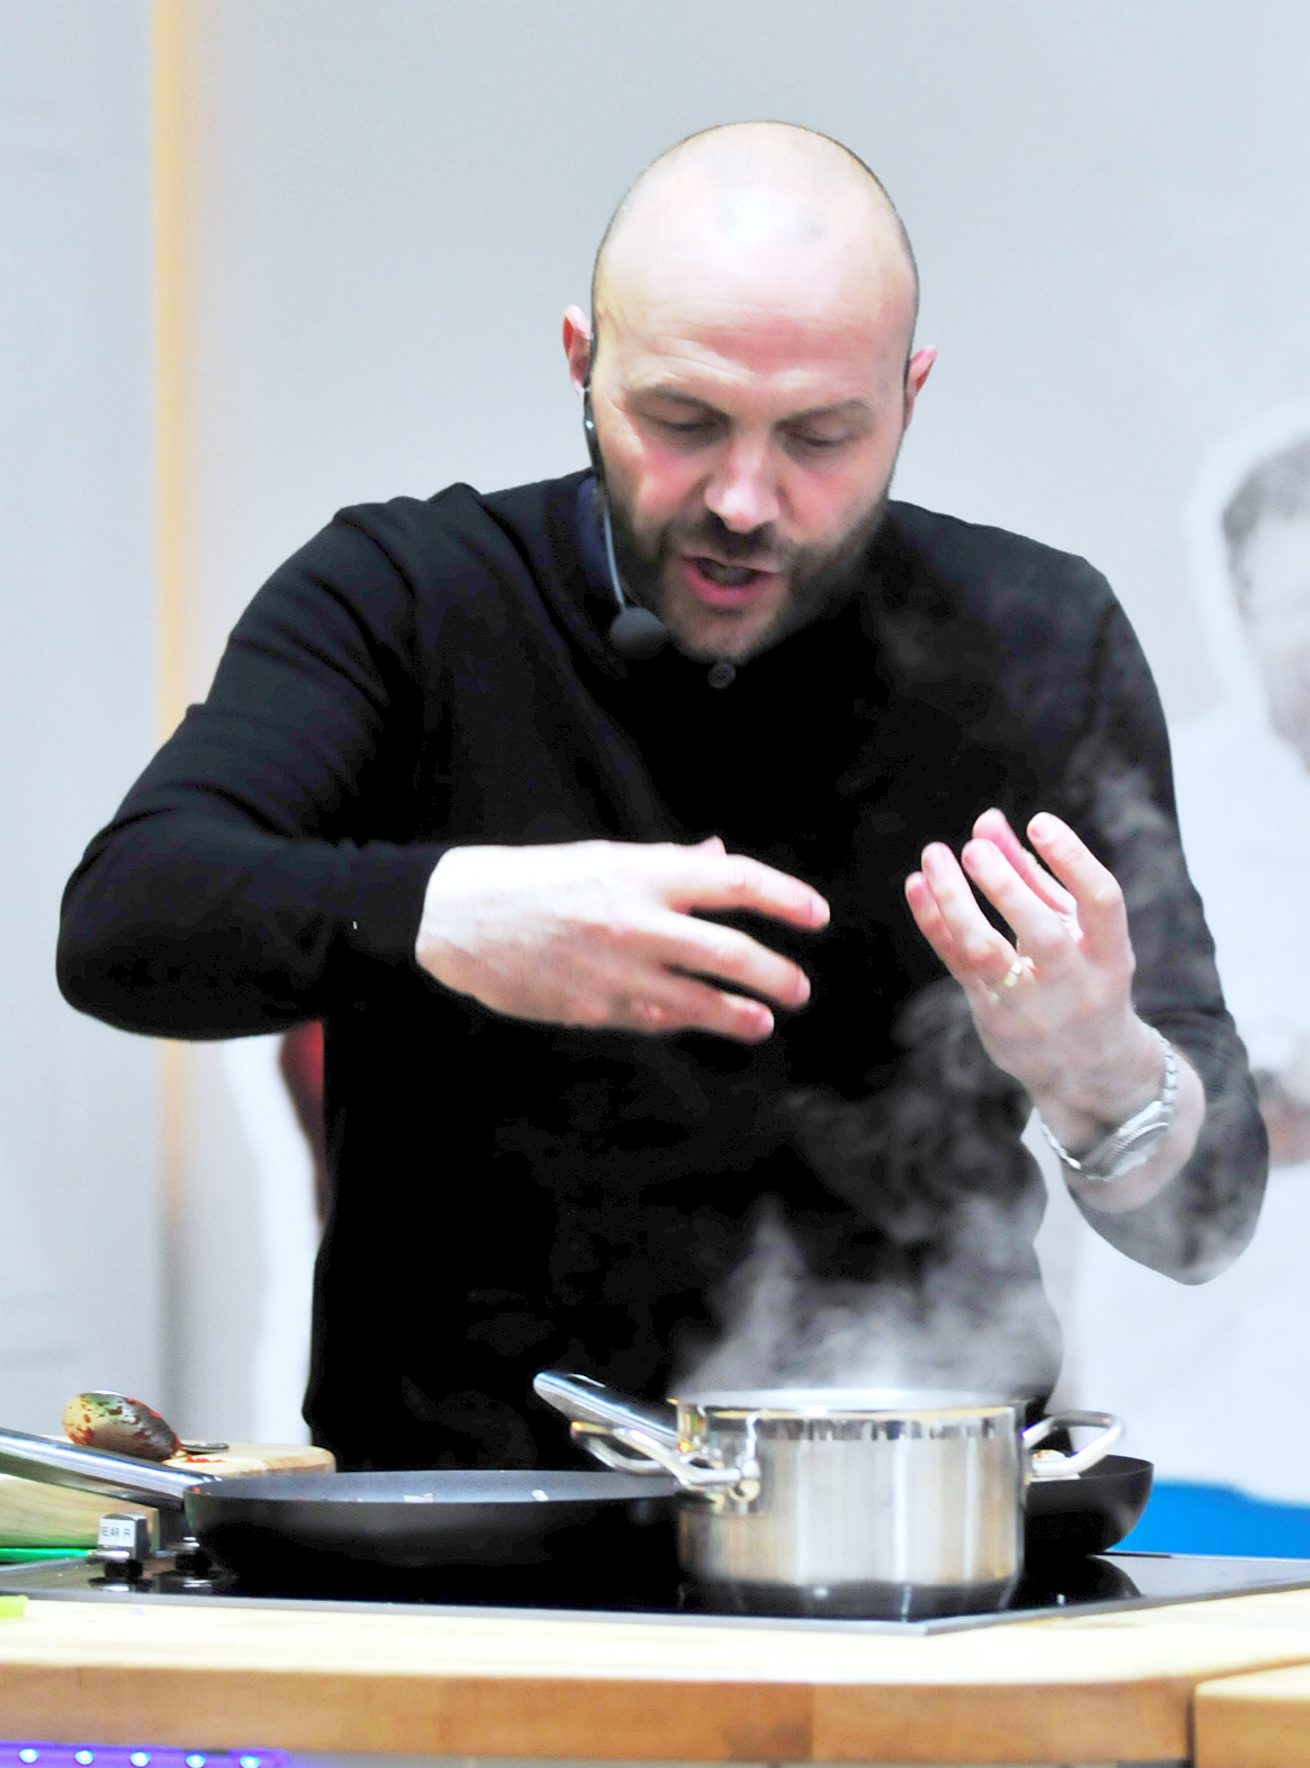 Cooking up a storm: Weather forces TV chef Simon Rimmer's demo undercover